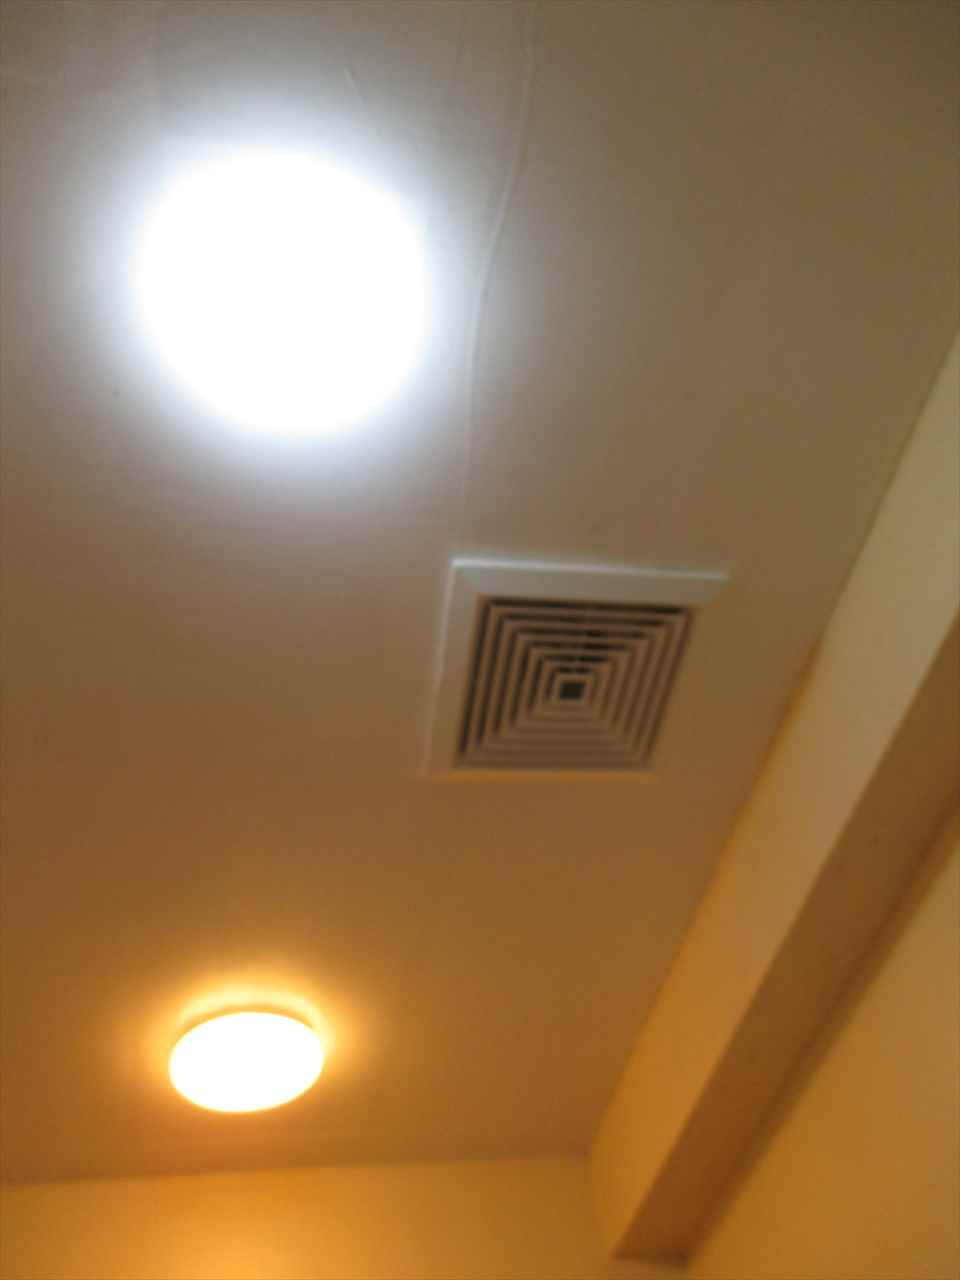 Exhaust fan of comfort room